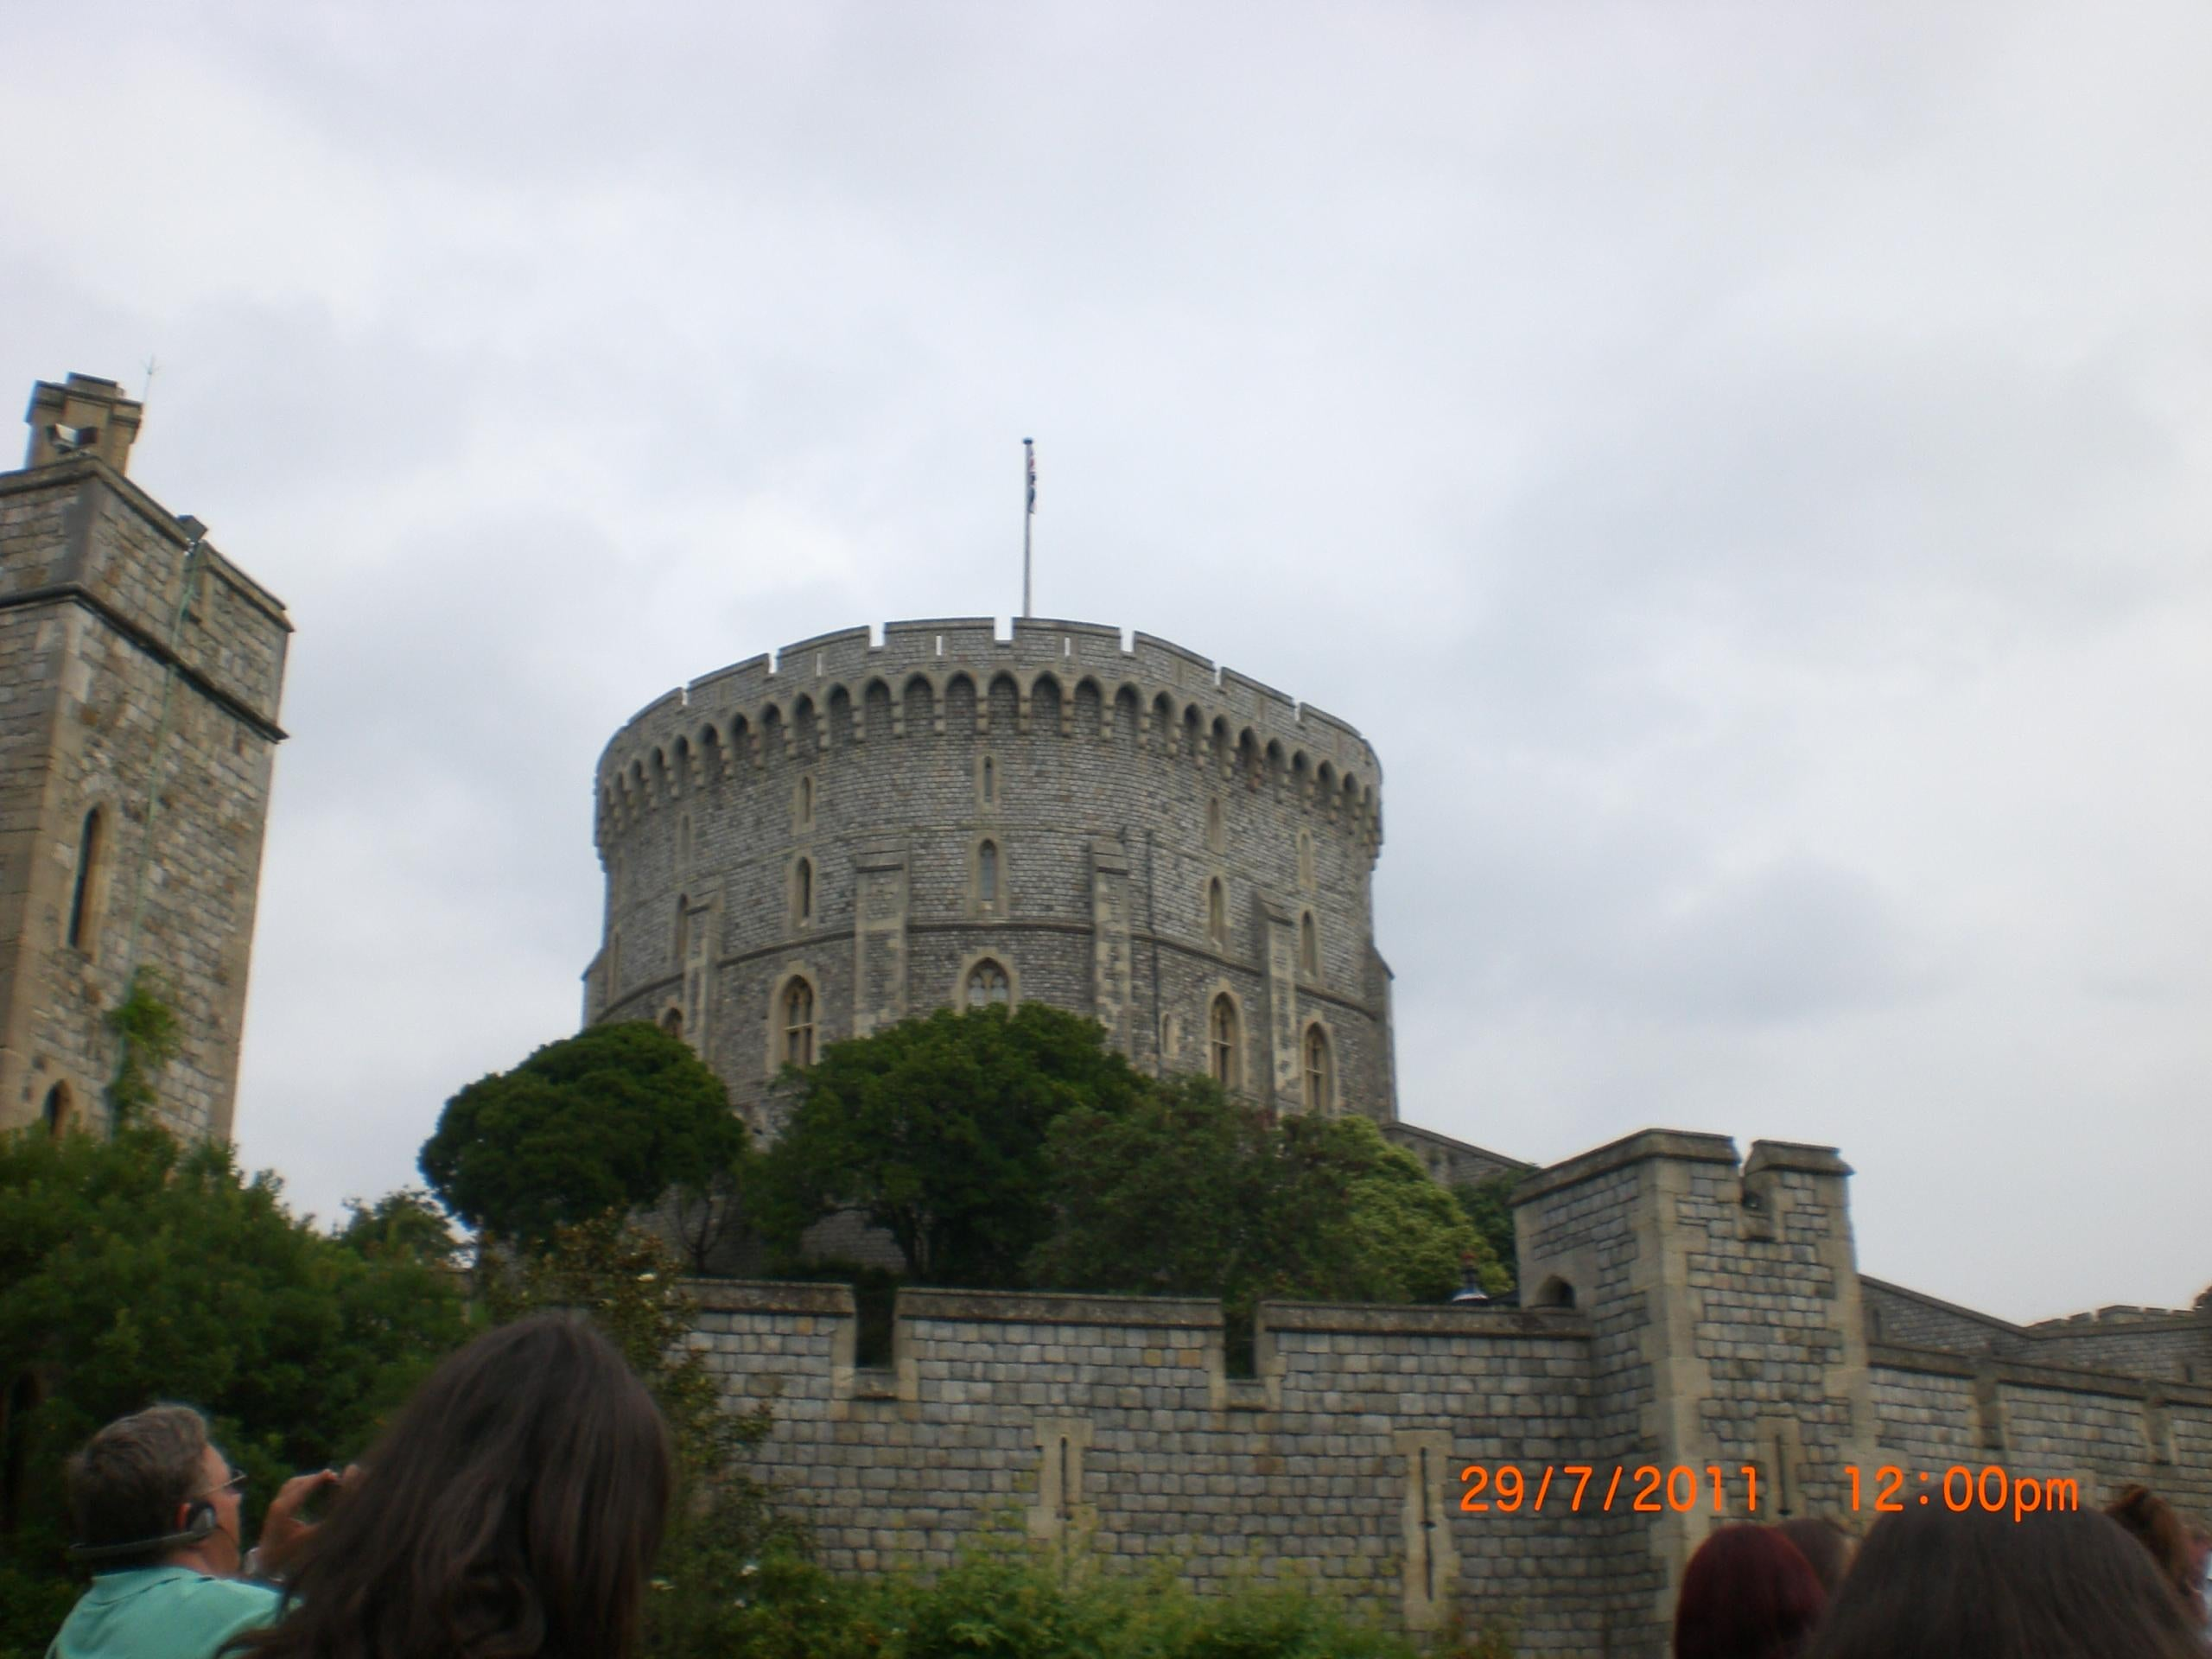 Torre en Castillo de Windsor